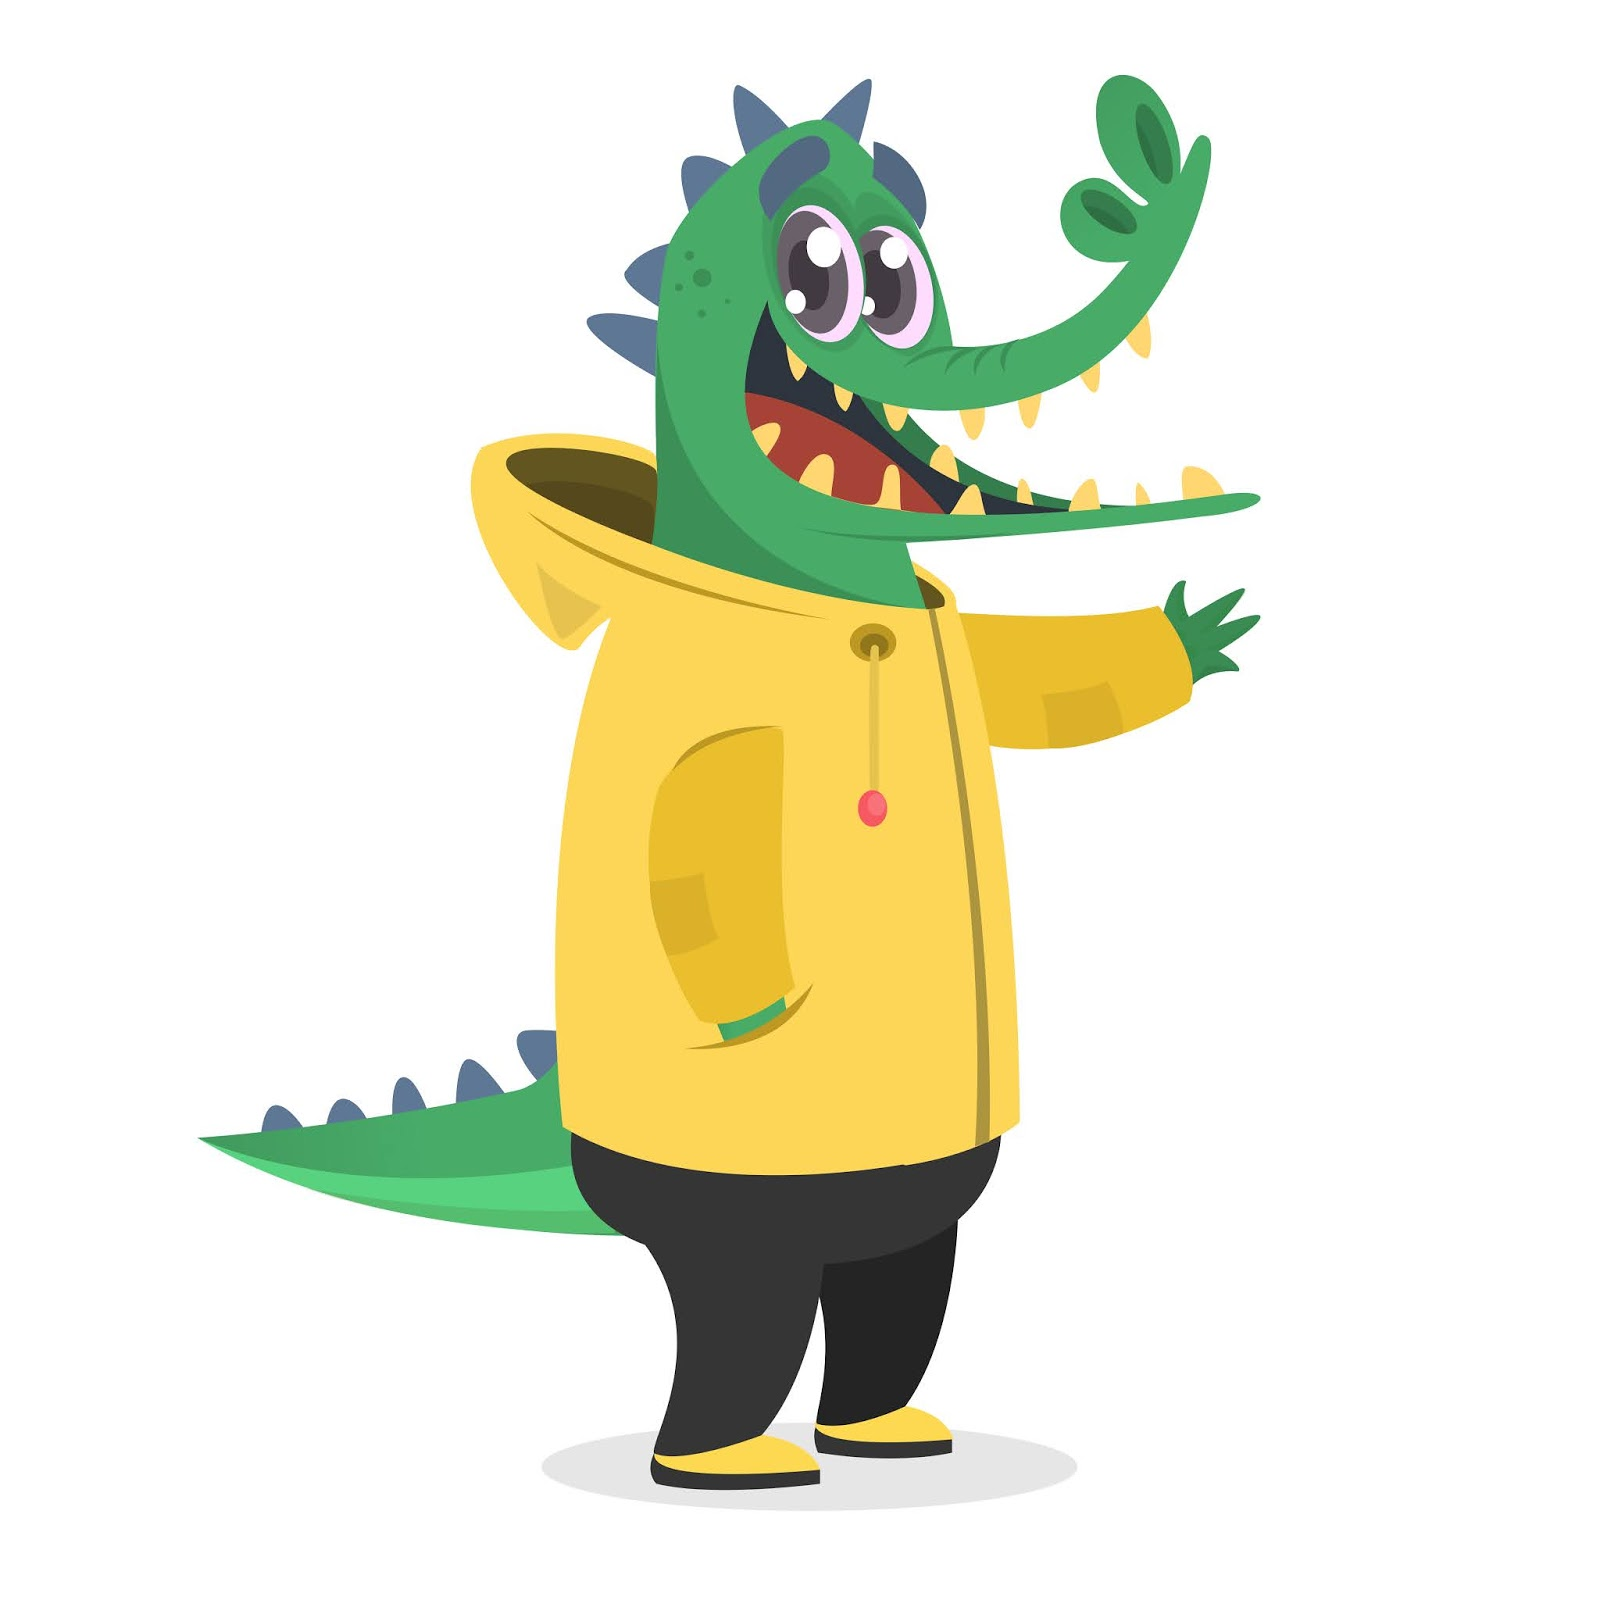 Cartoon Funny Crocodile Illustration Free Download Vector CDR, AI, EPS and PNG Formats